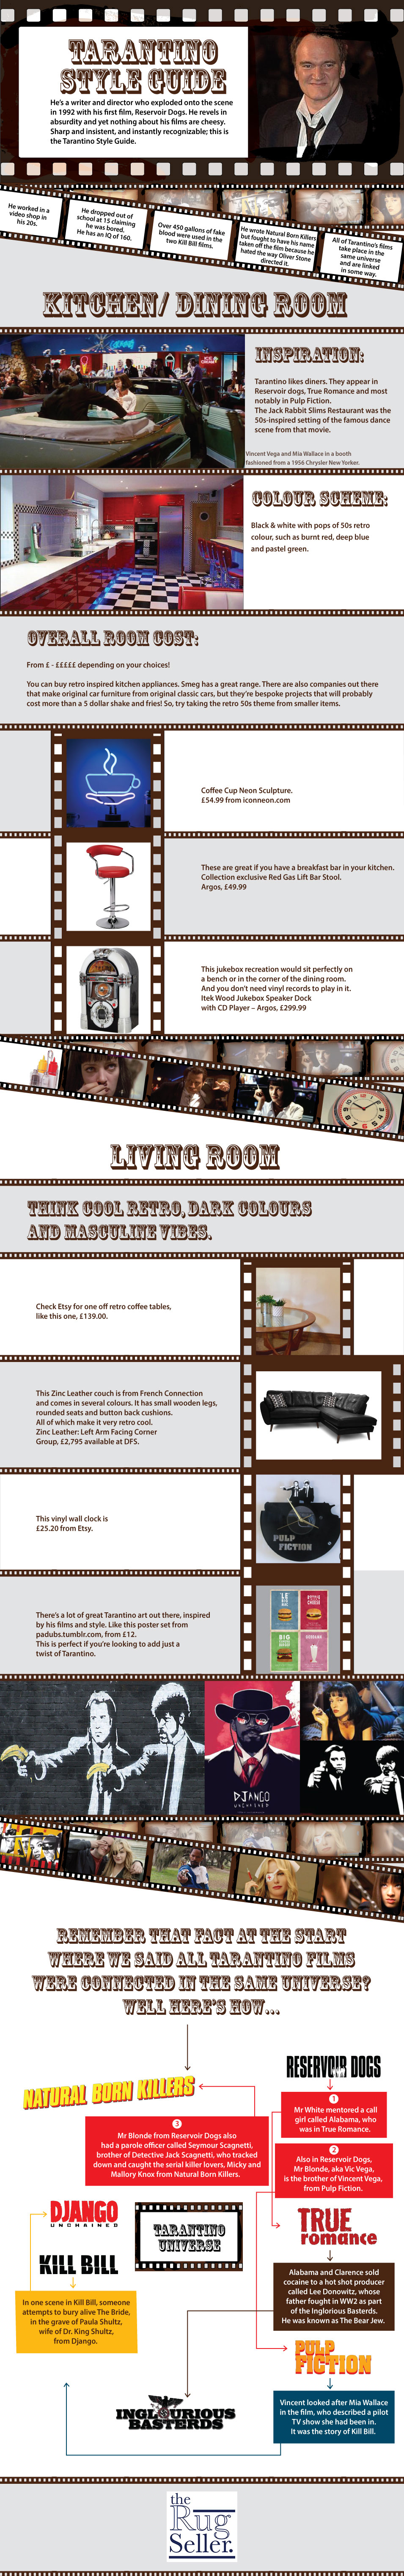 Quentin Tarantino Style Guide - Infographic